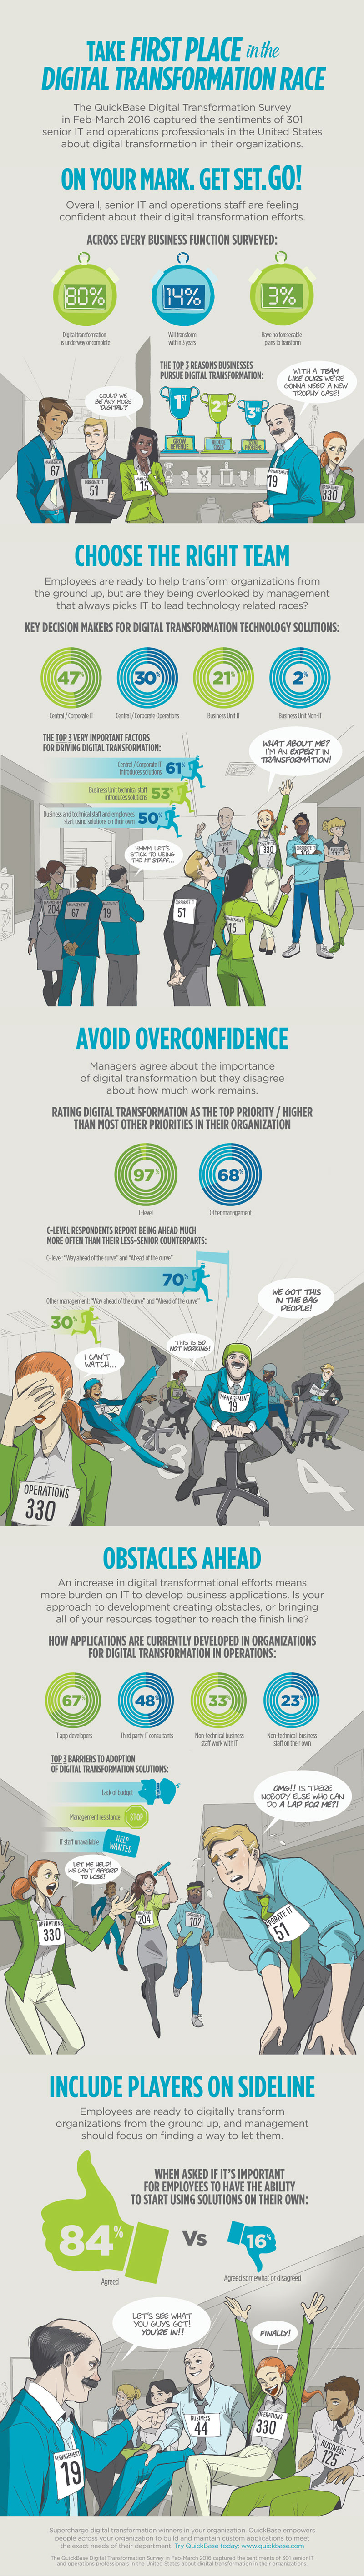 Digital Transformation Graphic Survey Results